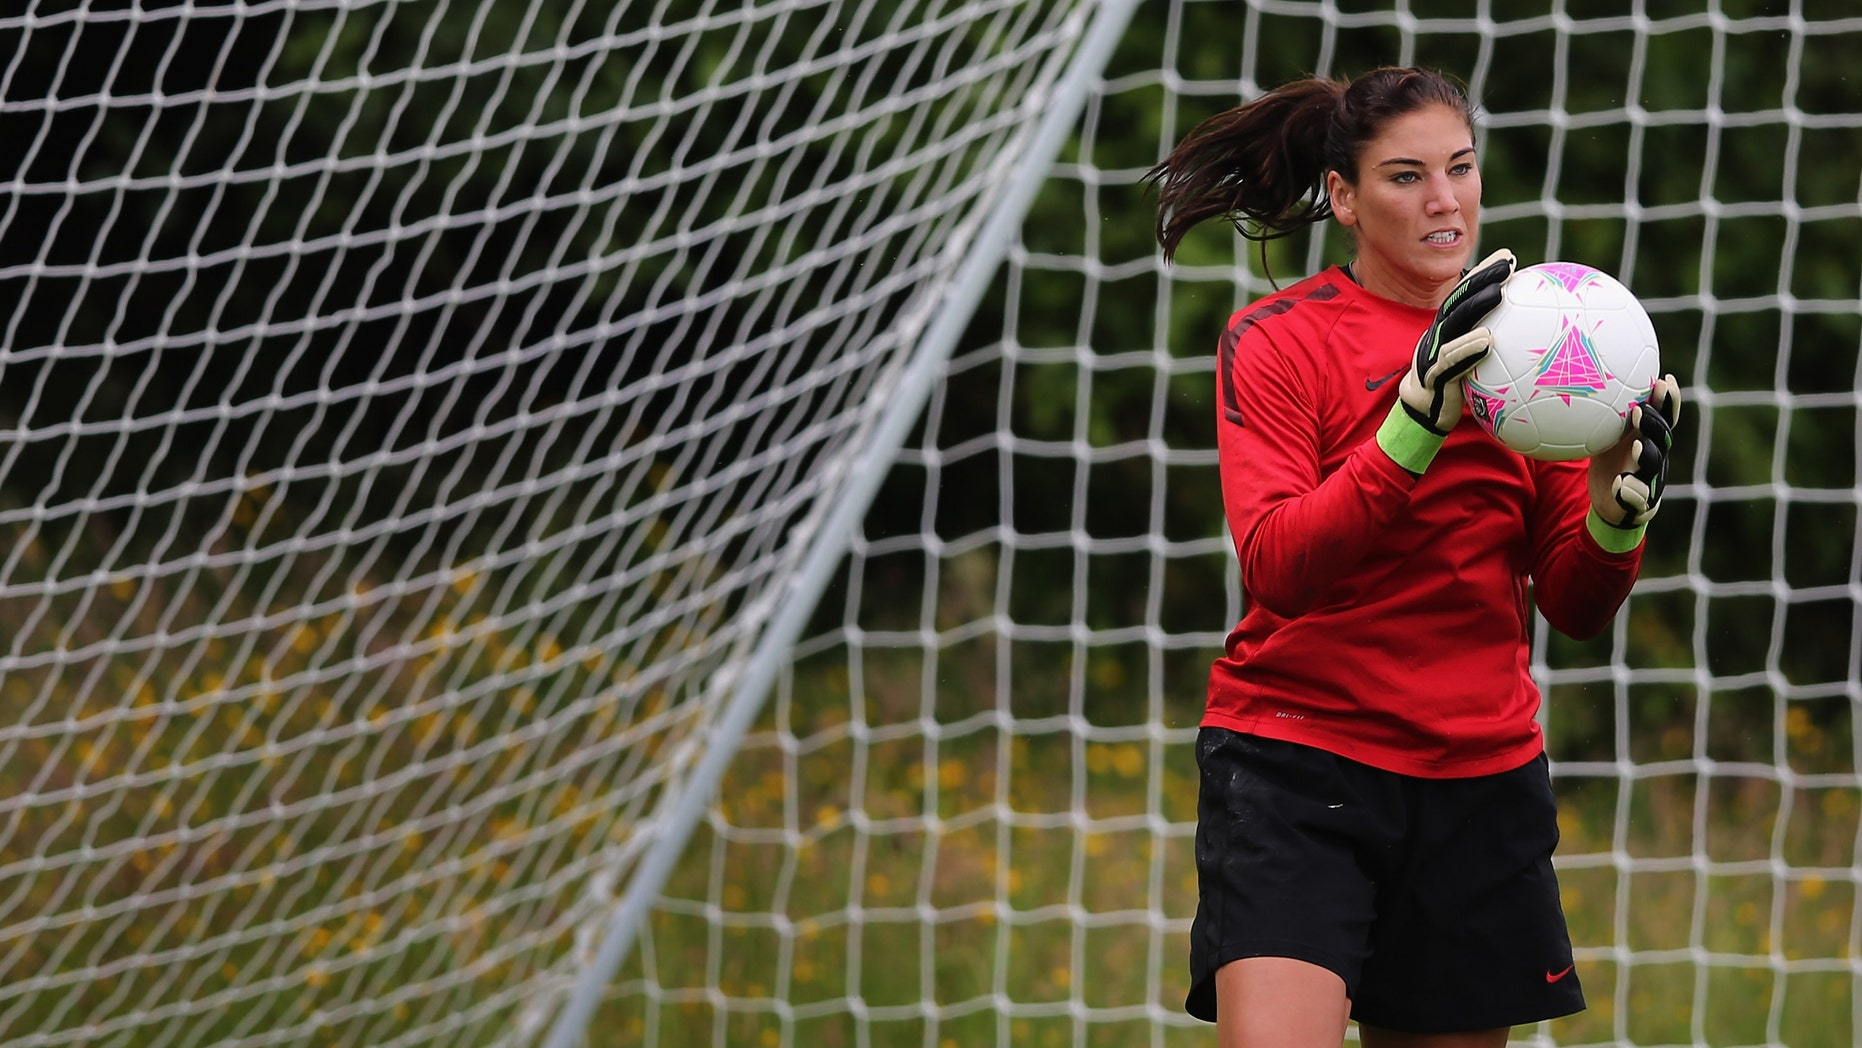 GLASGOW, SCOTLAND - JULY 19:  Hope Solo goalkeeper of USA womens Olympic football team in action during a training session ahead of the Olympics on July 19, 2012 in Glasgow, Scotland.  (Photo by Jeff J Mitchell/Getty Images)